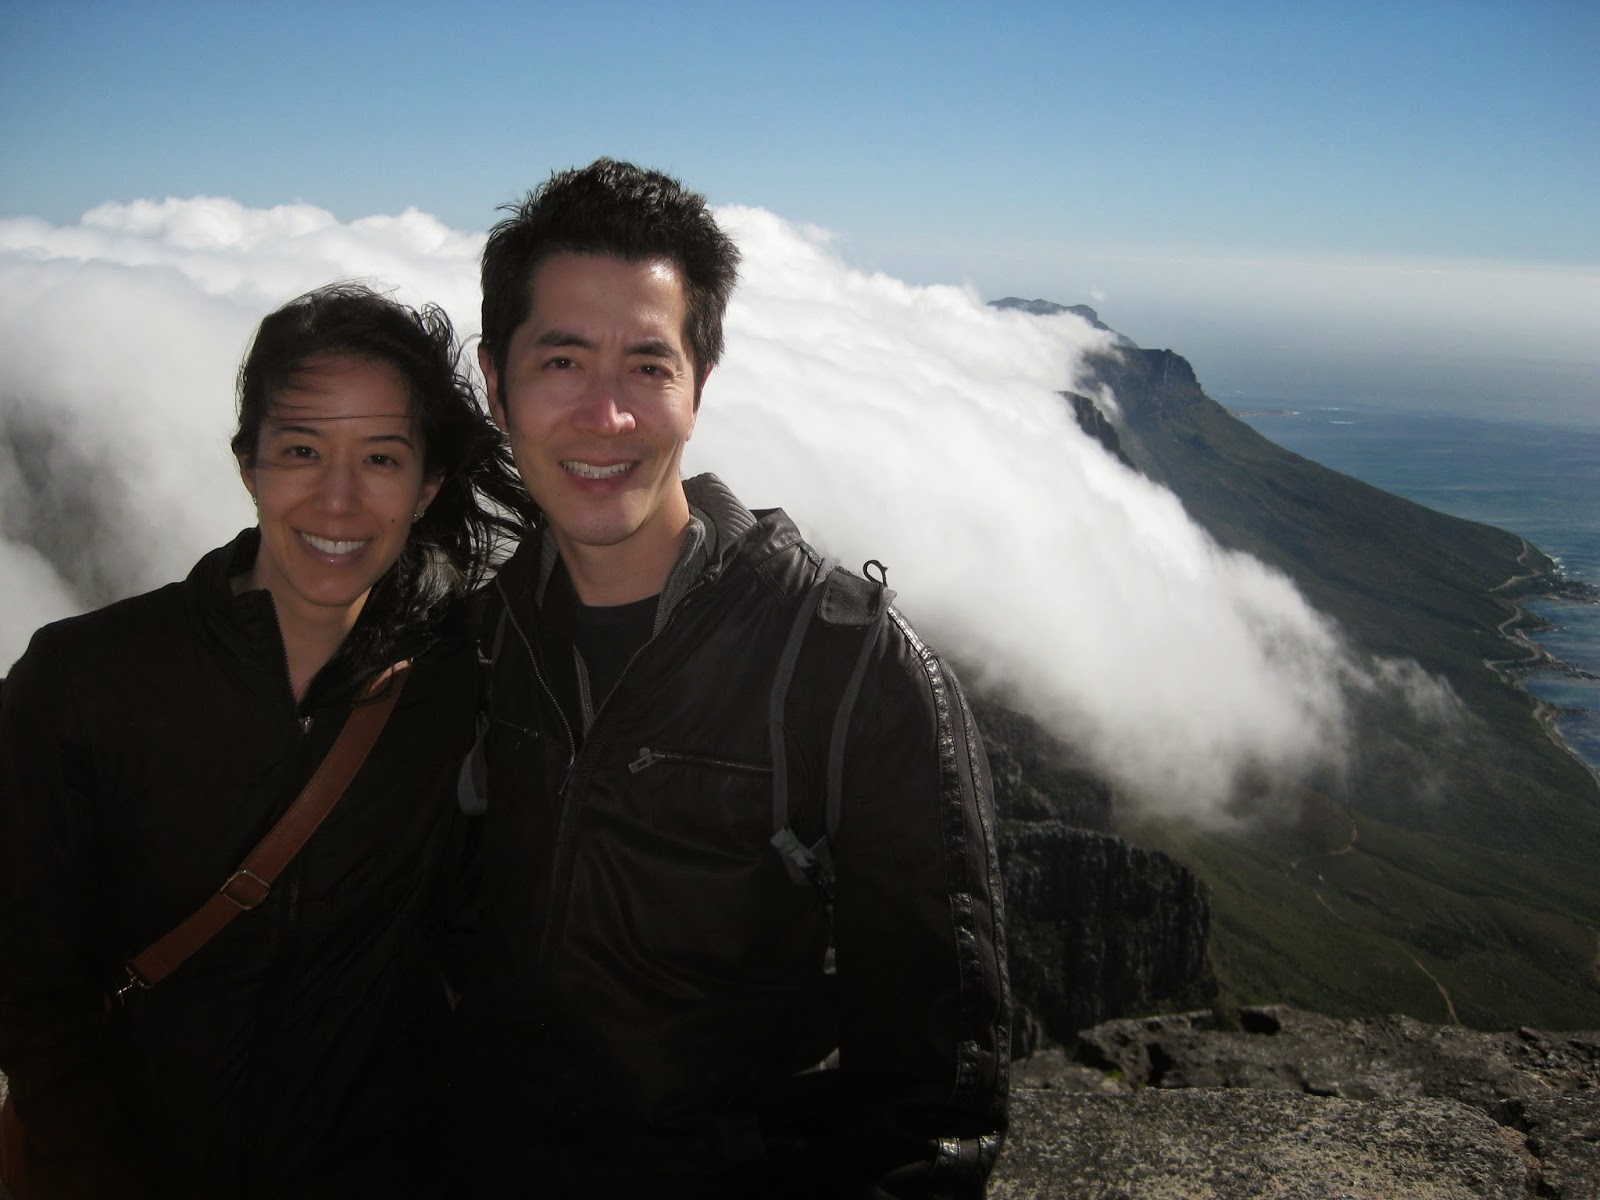 Cape Town - I'm so glad I had my jacket while we were on Table Mountain